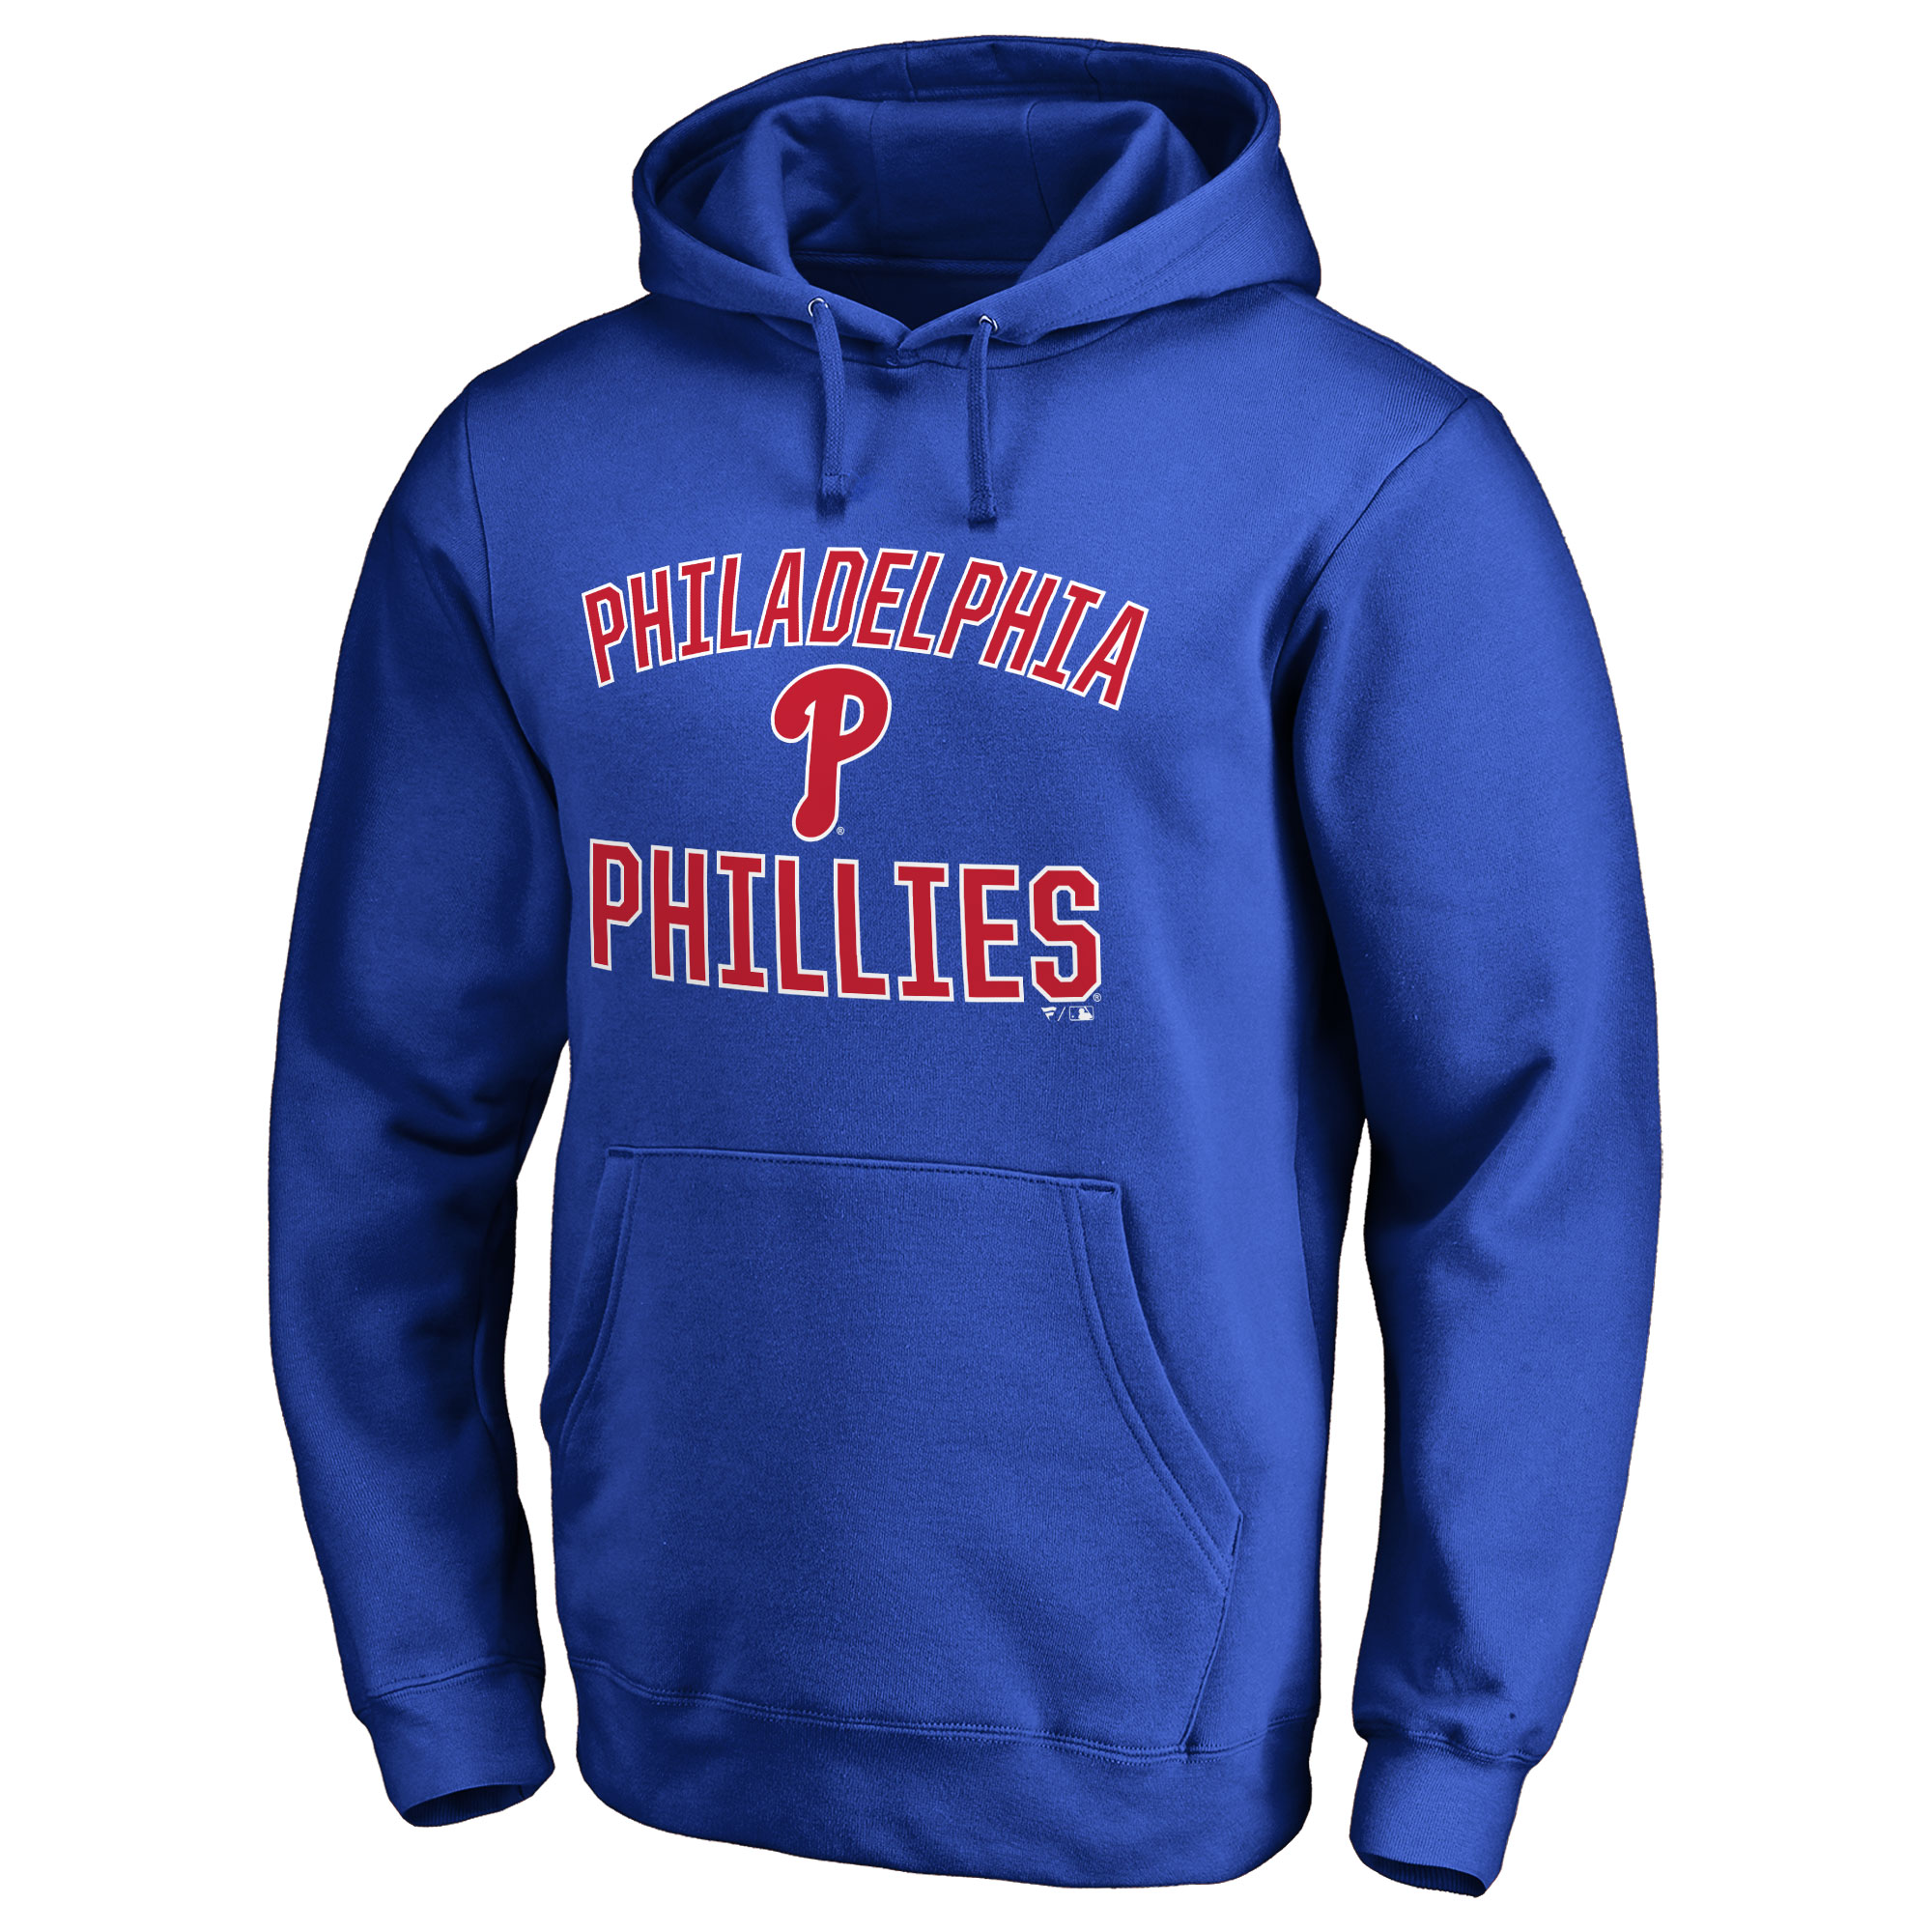 Philadelphia Phillies Victory Arch Pullover Hoodie - Royal